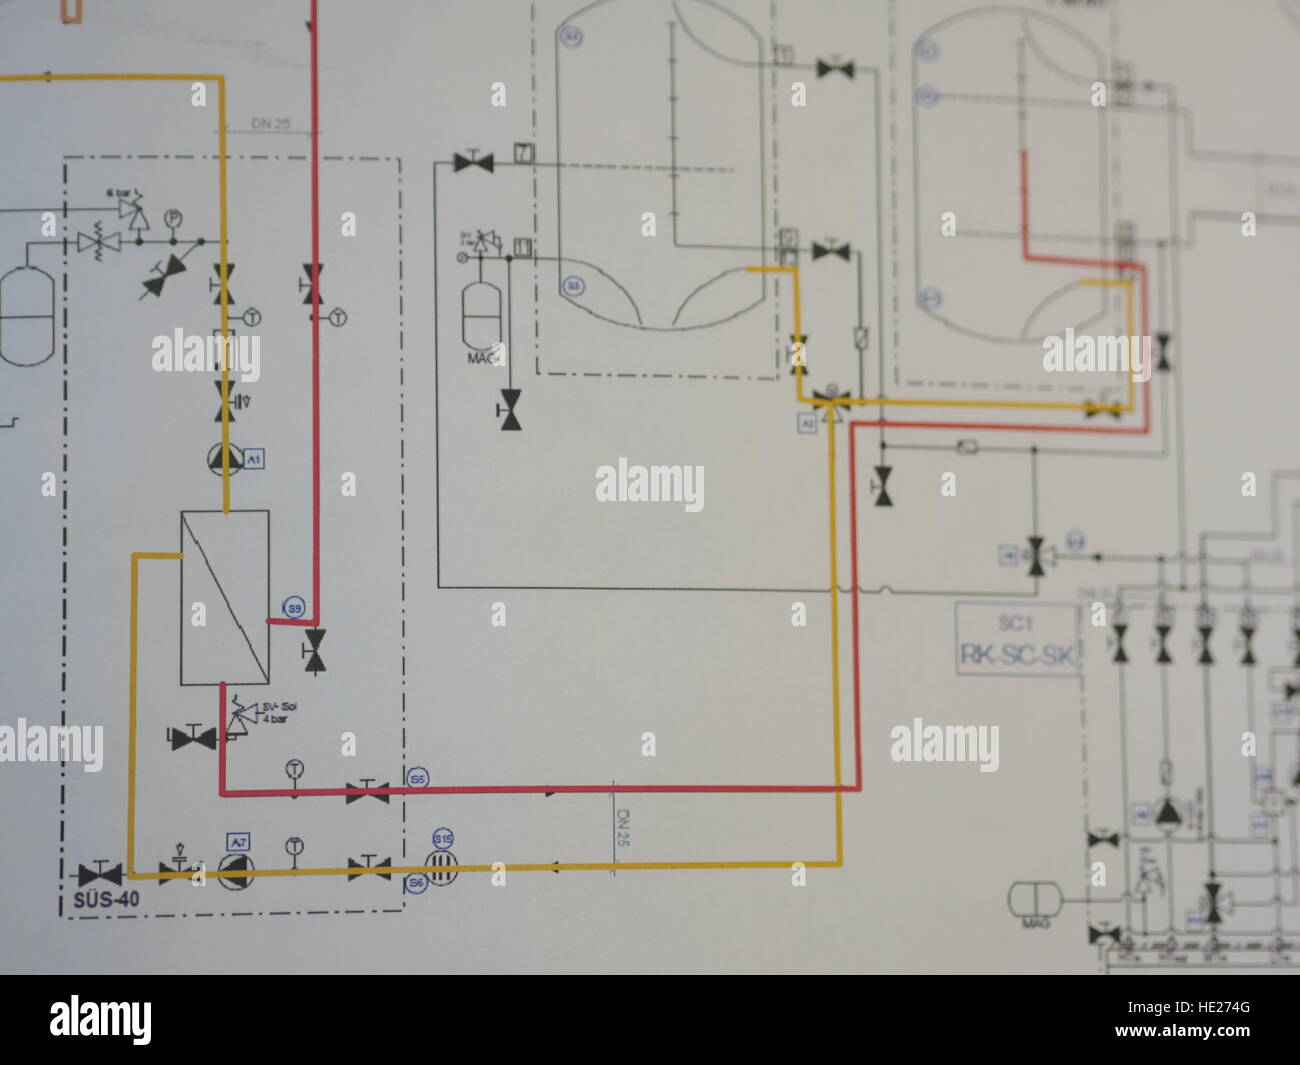 Wiring Diagram Stock Photos Images Alamy Of Electricity Image